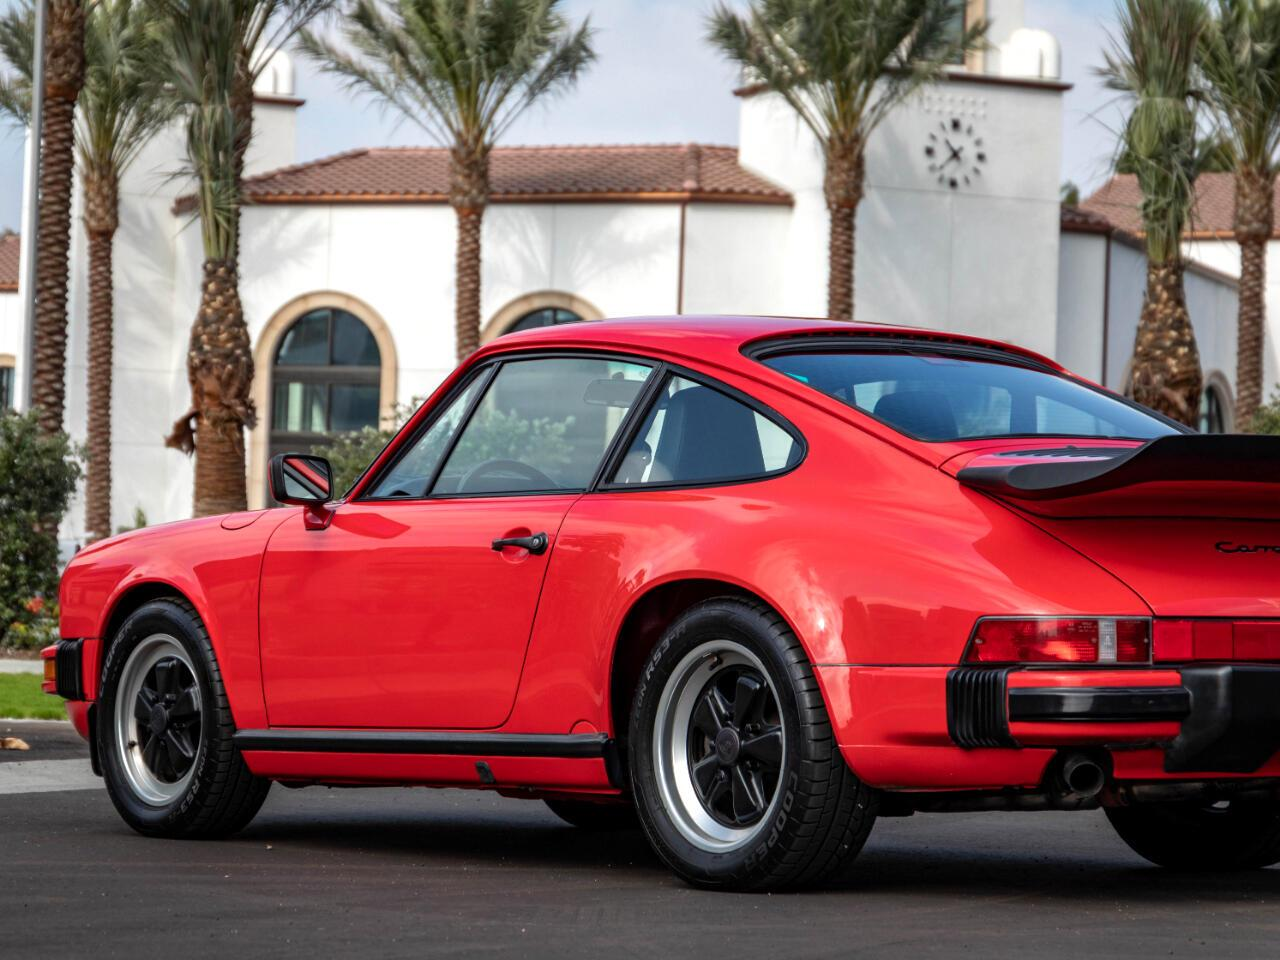 1988 Porsche 911 Carrera (CC-1419968) for sale in Marina Del Rey, California